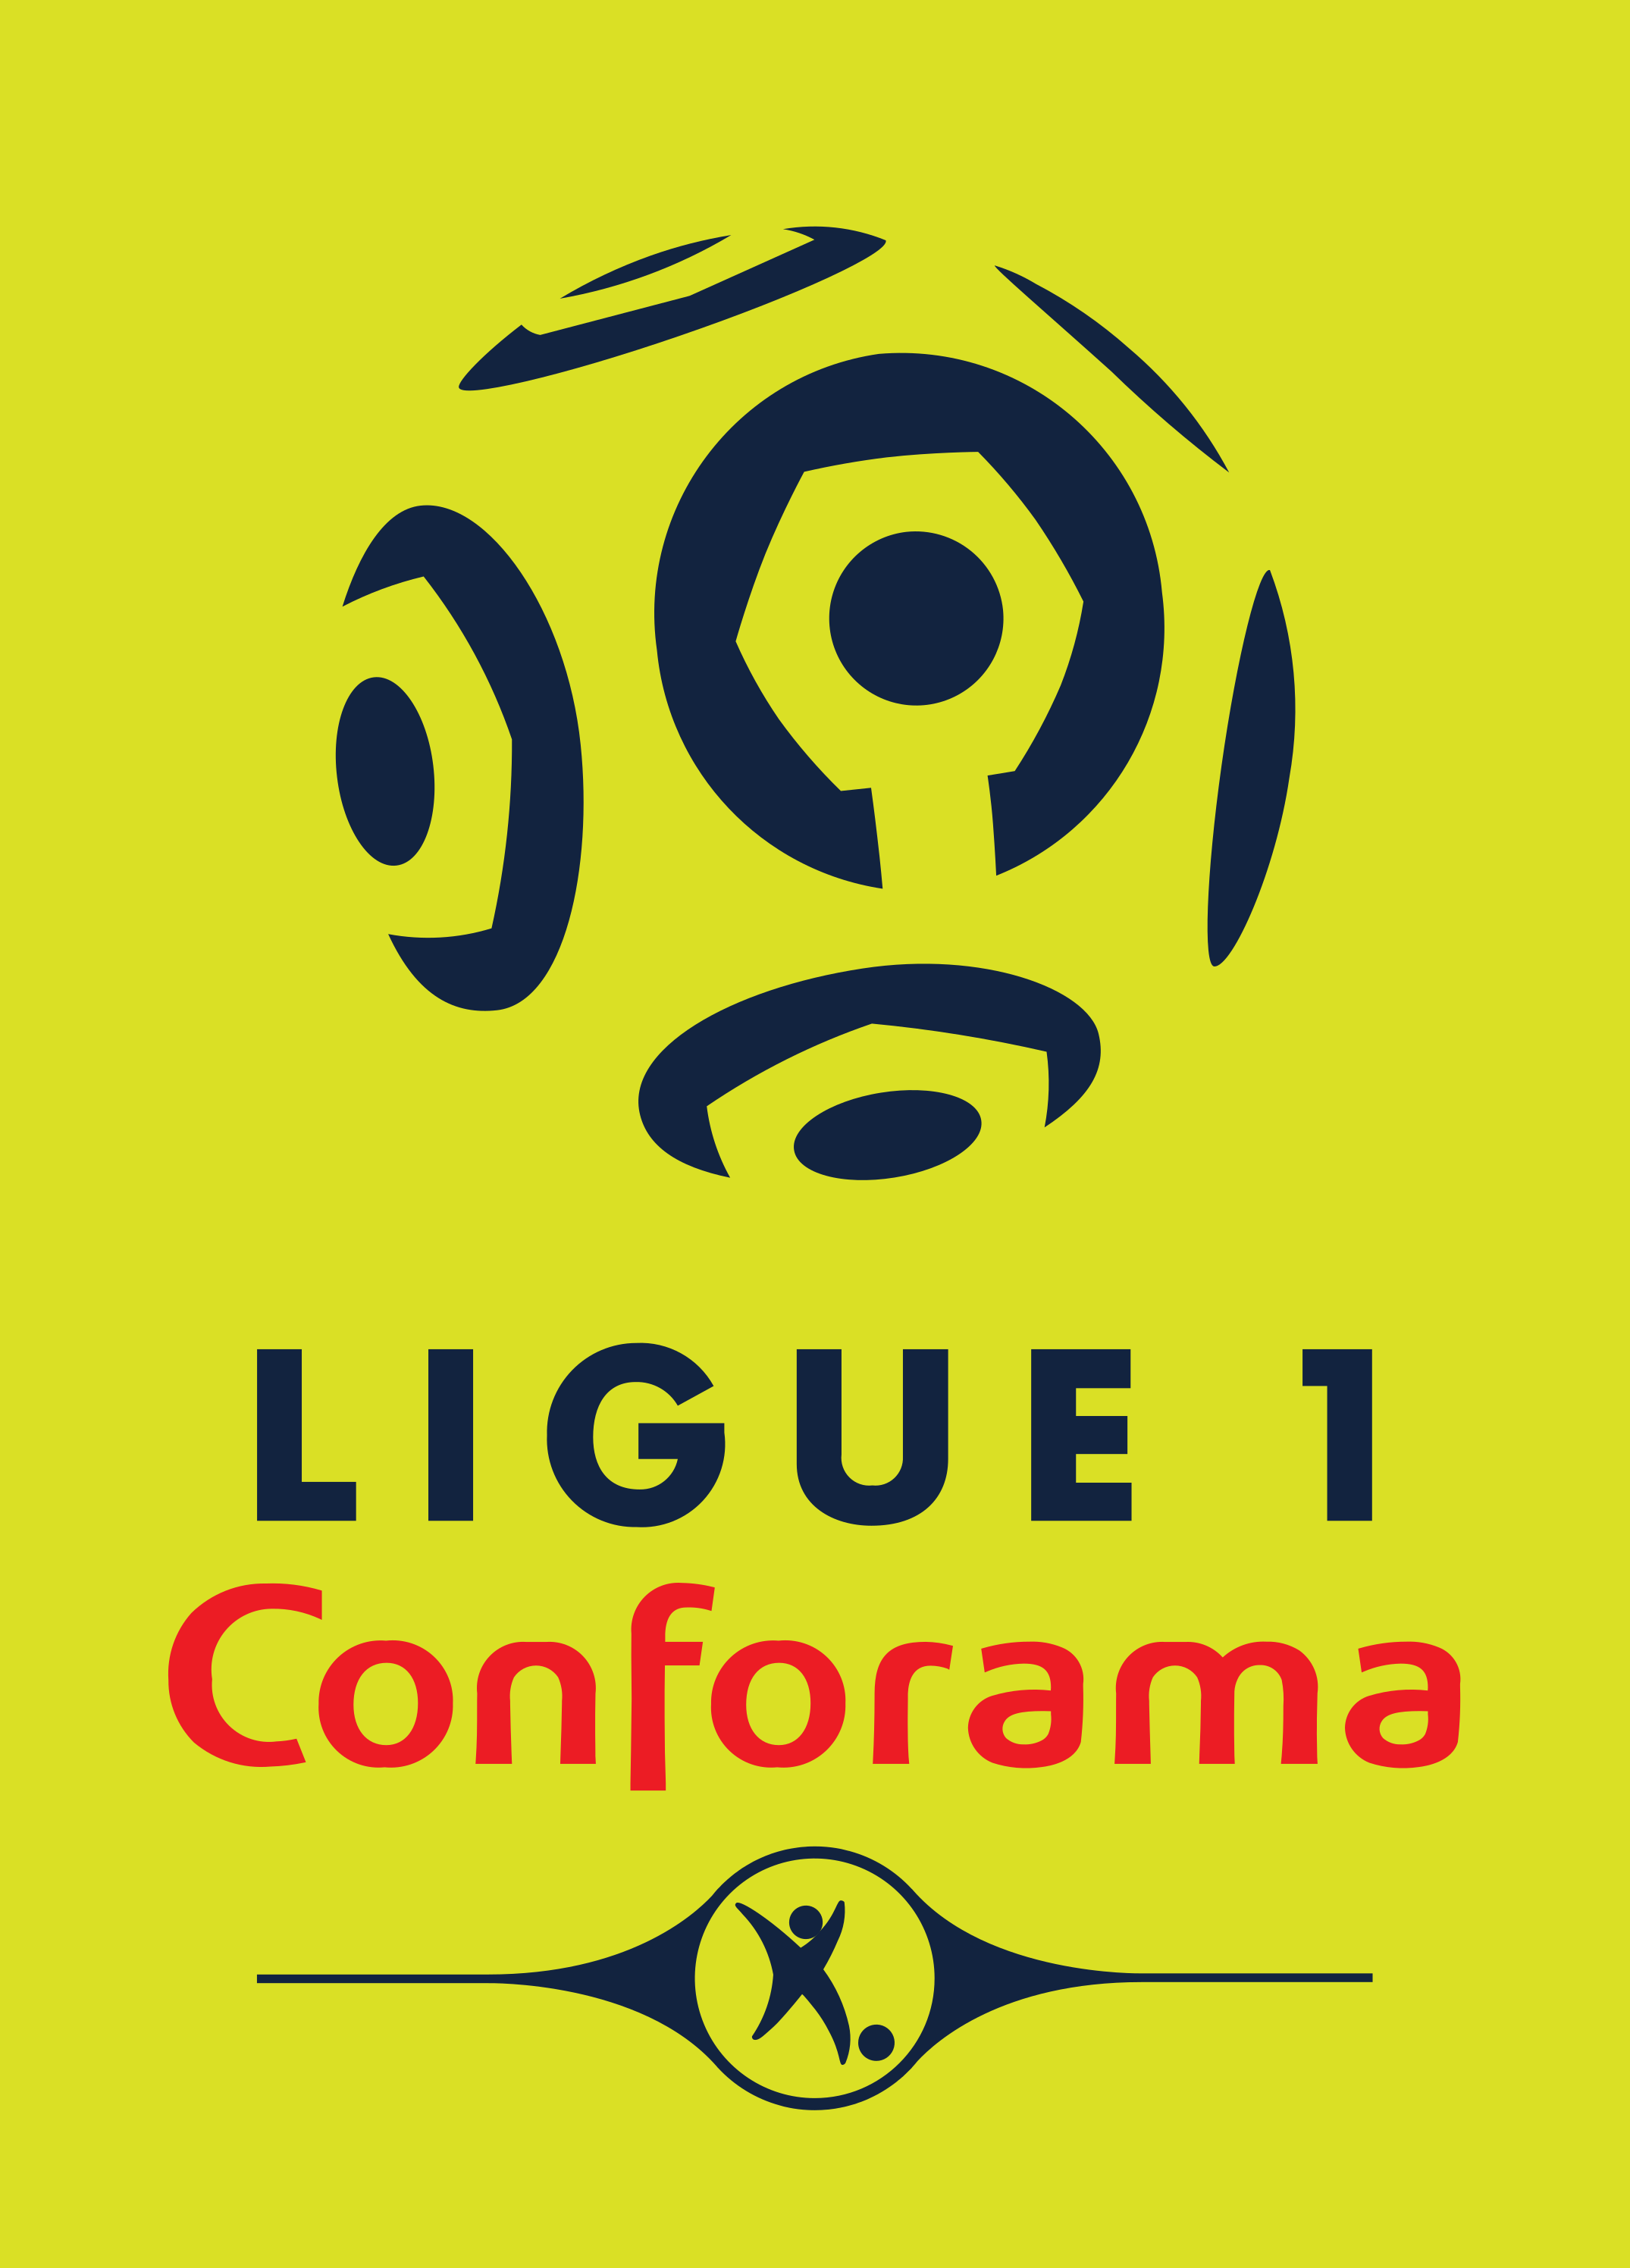 ligue 1 logo png and vector logo download ligue 1 logo png and vector logo